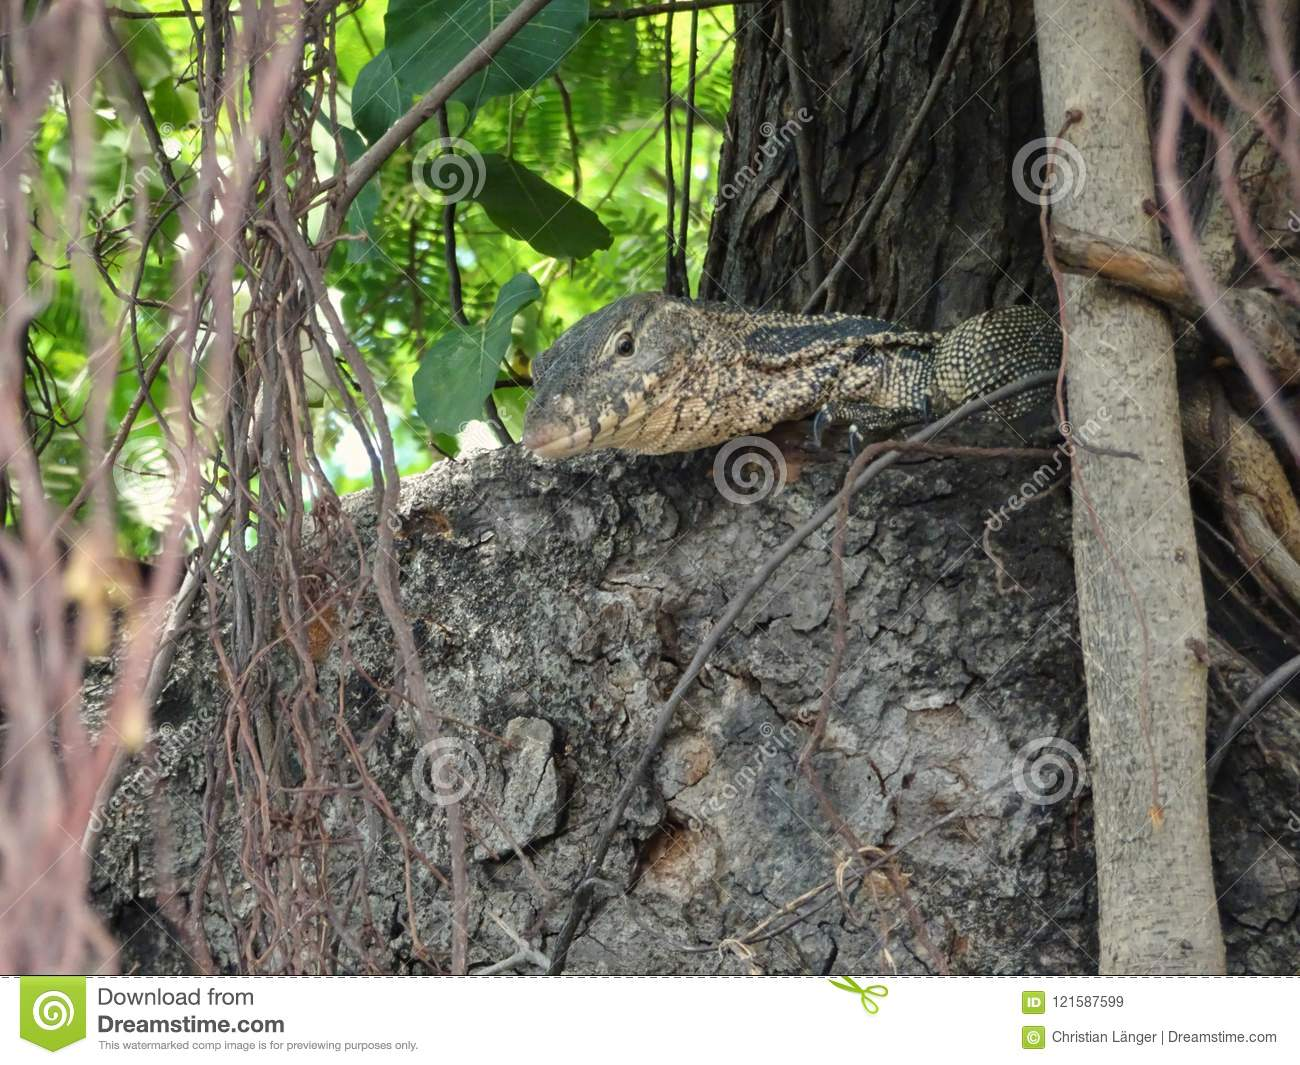 Little asian lizard on a tree in the middle of Bangkok